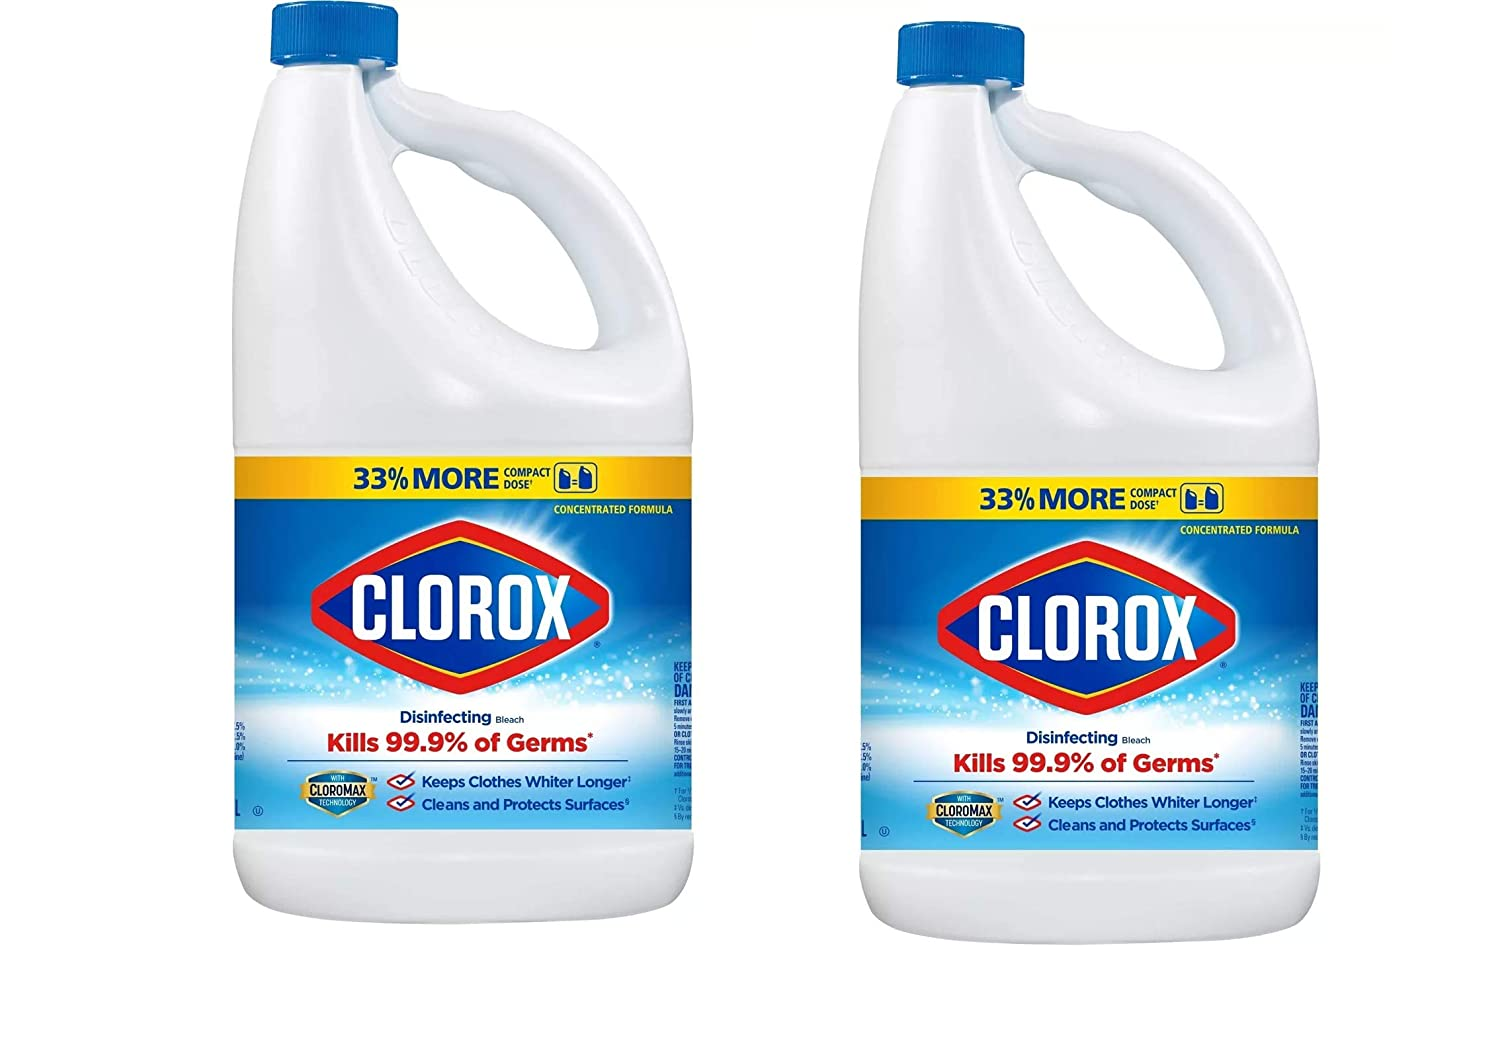 Clorox Disinfecting Bleach, Regular - 81 Ounce Bottle, 6.26 Fl oz